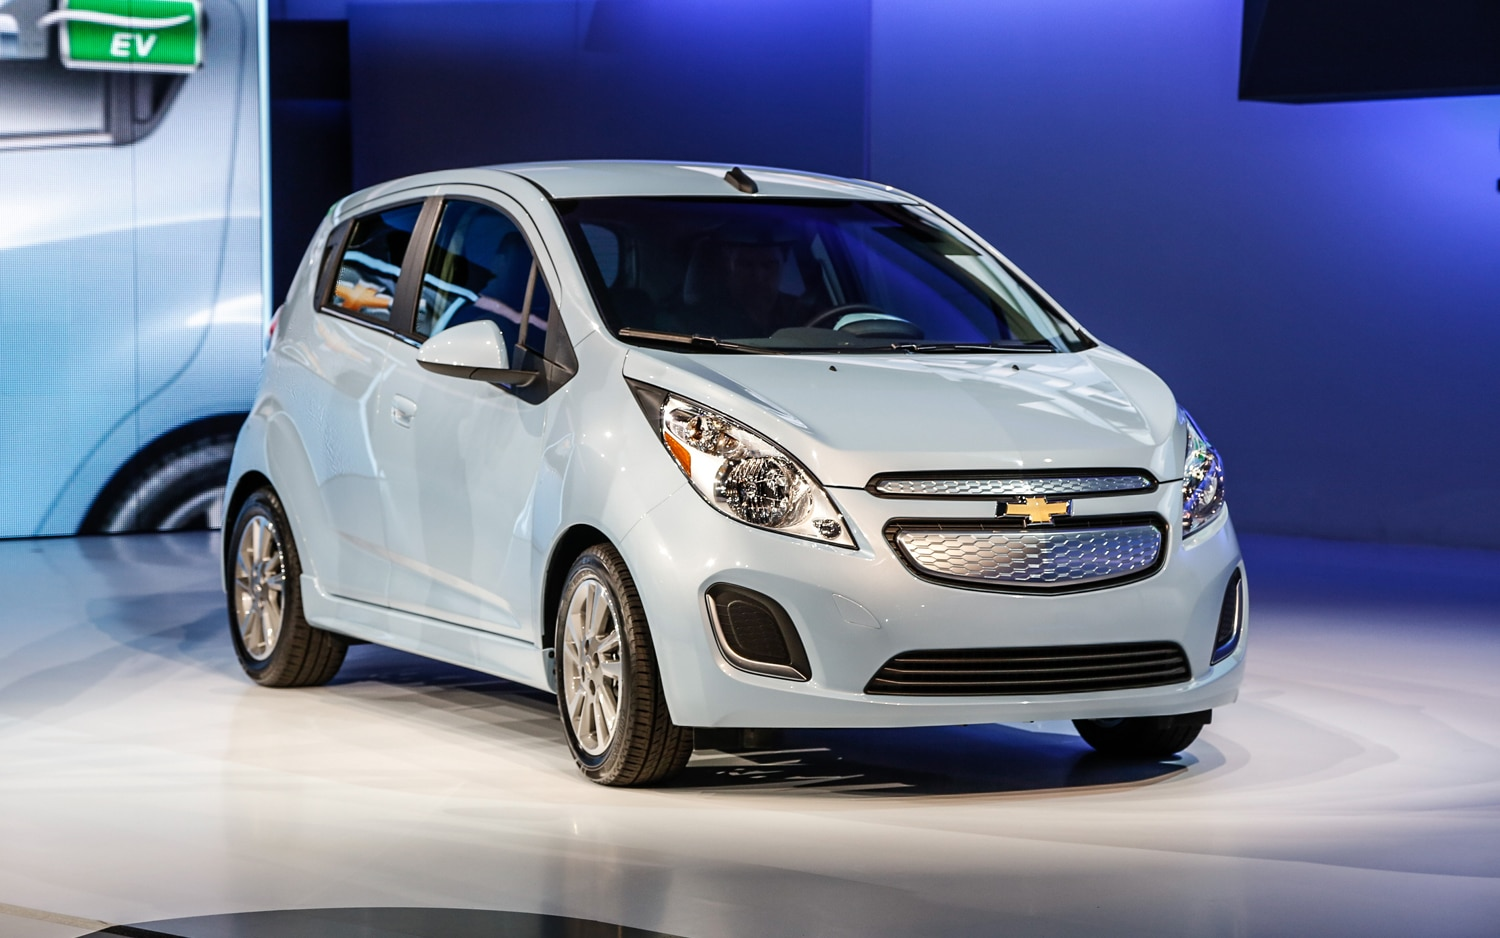 2014 Chevrolet Spark EV Front Right View1